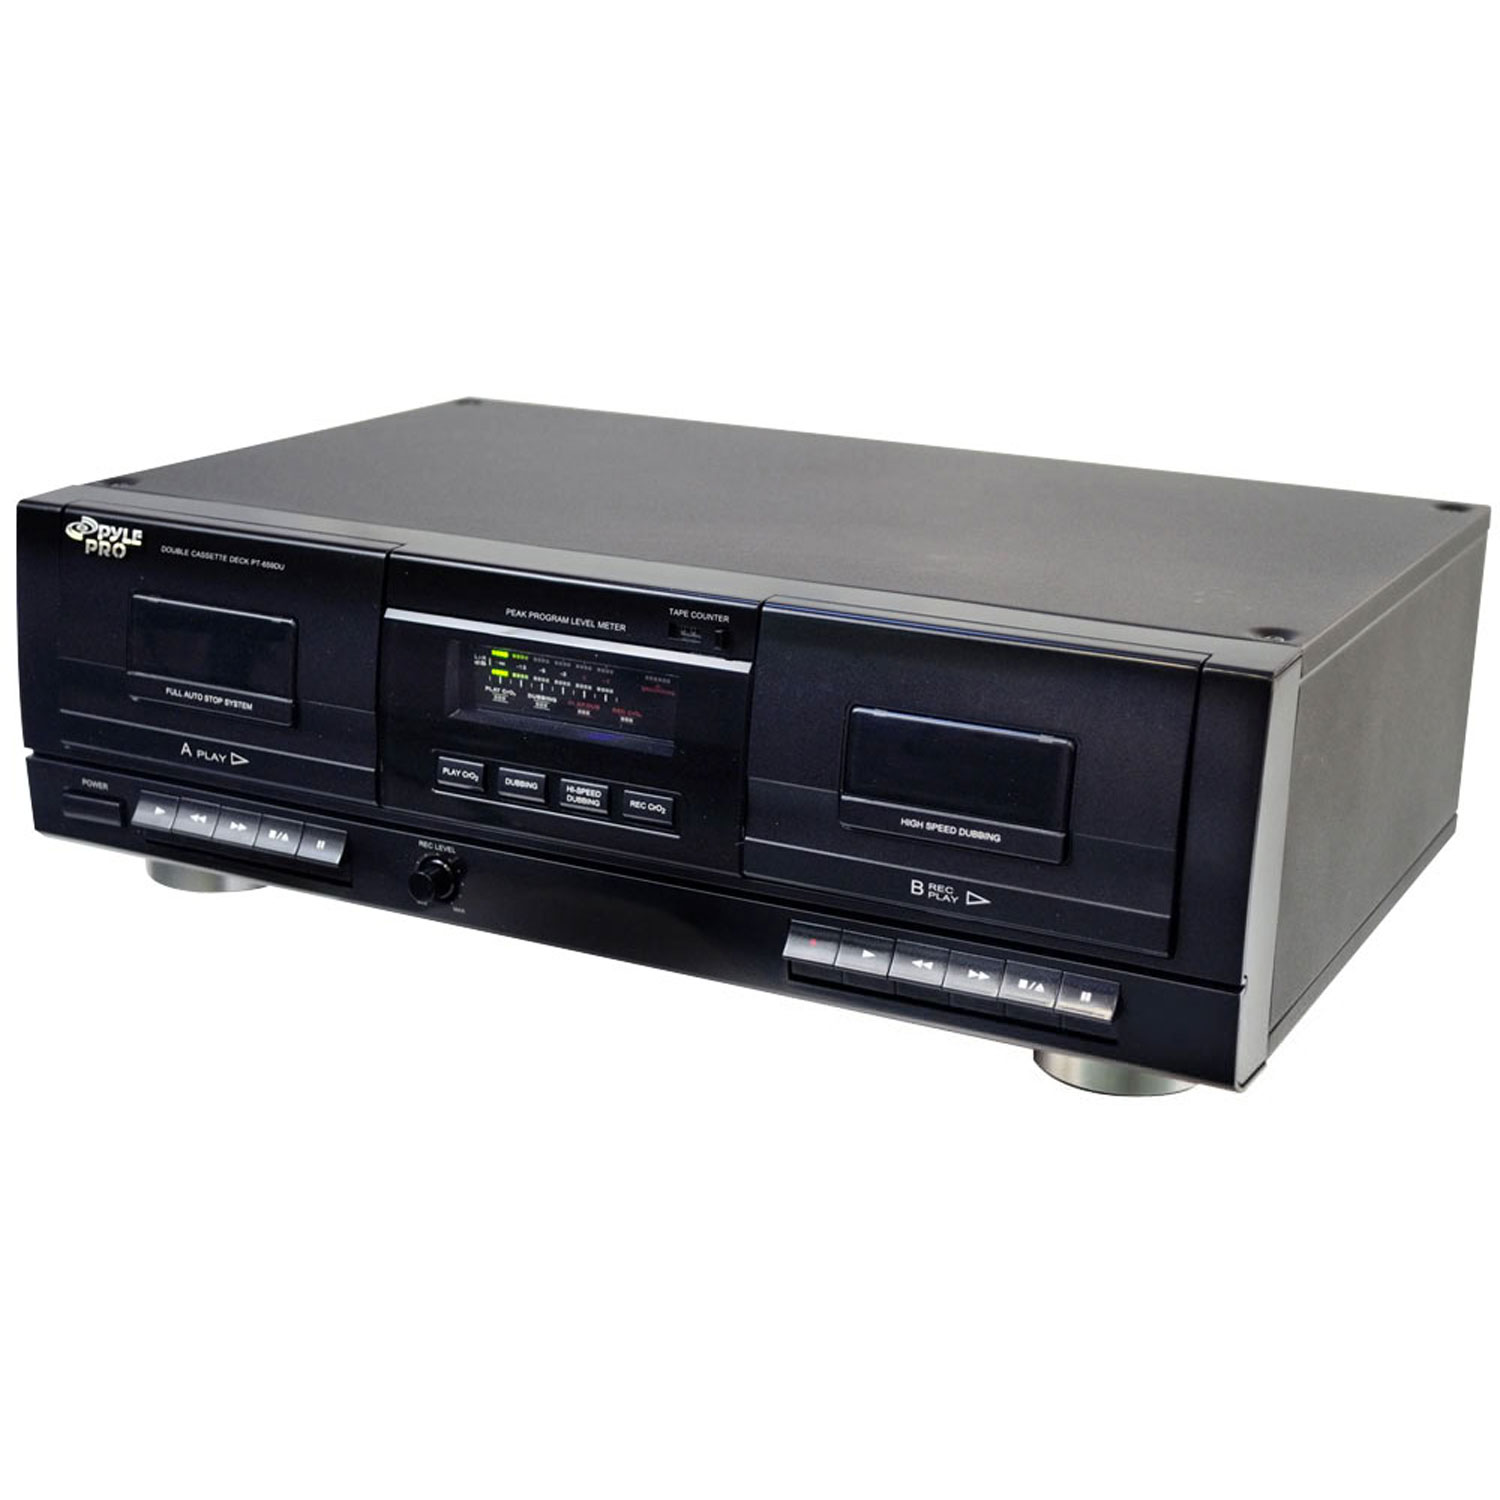 Pyle Dual Stereo Cassette Deck w Tape USB to MP3 Converter by Pyle